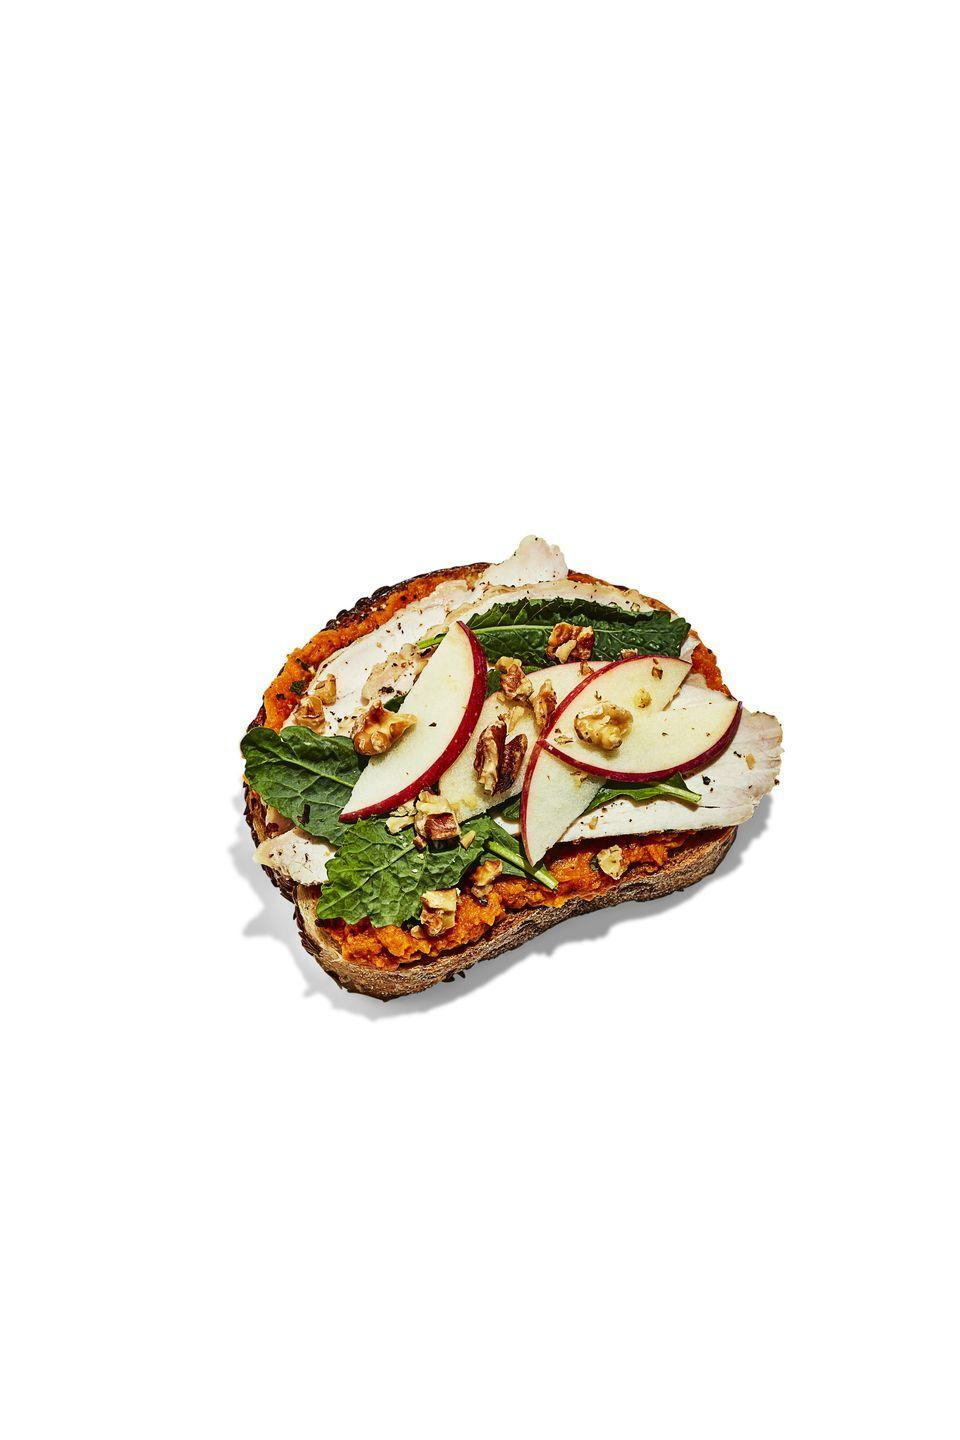 <p><strong>BREAD:</strong> 4 slices rye</p><p><strong>SPREAD:</strong> ¾ cup mashed sweet potato + 1 Tbsp chopped sage + 2 tsp maple syrup + ⅛ tsp cinnamon</p><p><strong>TOPPING:</strong> 2 Tbsp chopped walnuts + 1 sliced small apple + 1 cup baby kale</p>